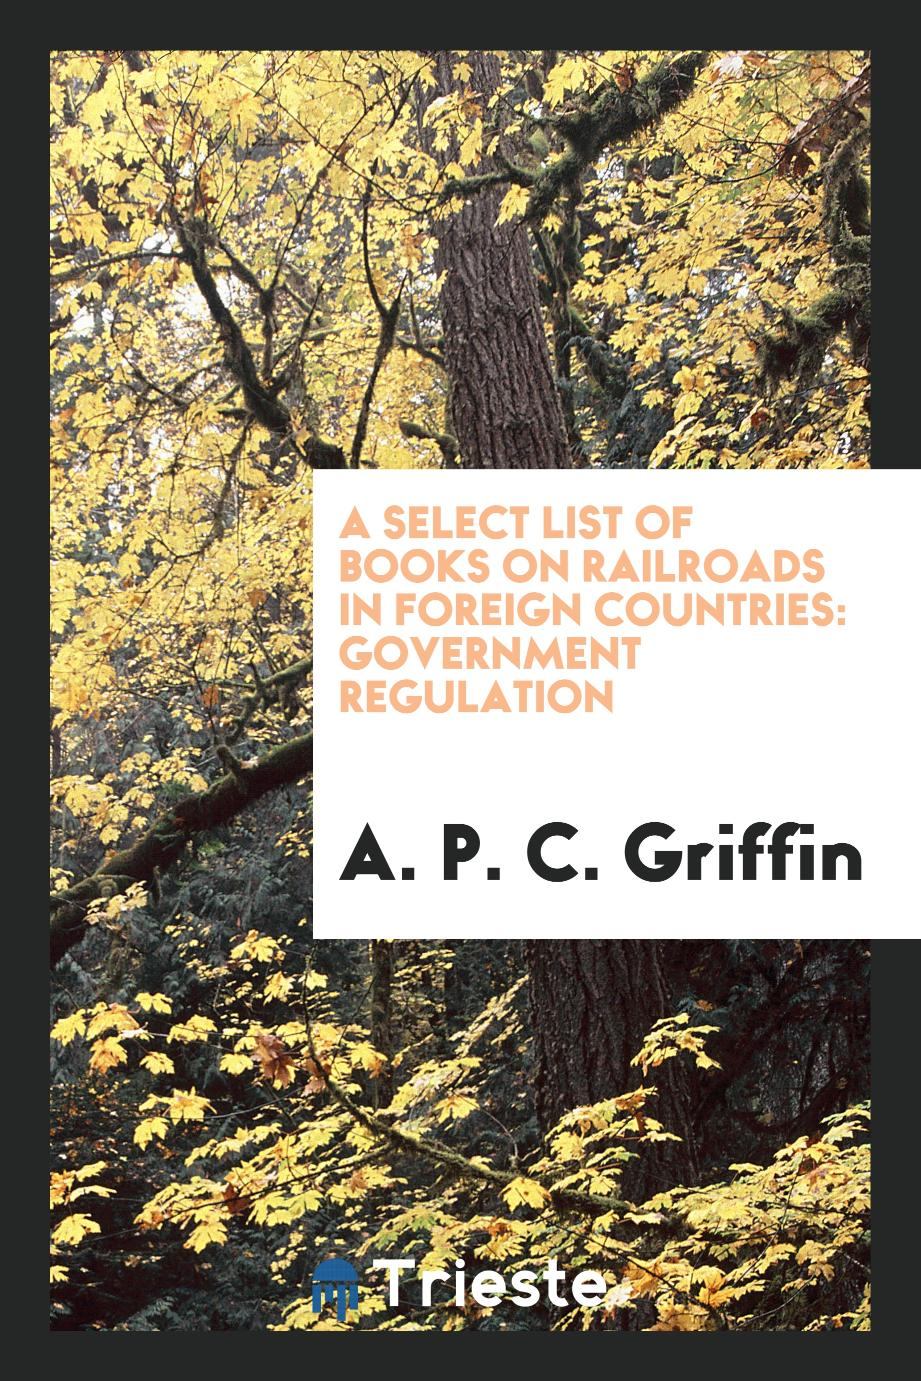 A Select List of Books on Railroads in Foreign Countries: Government Regulation